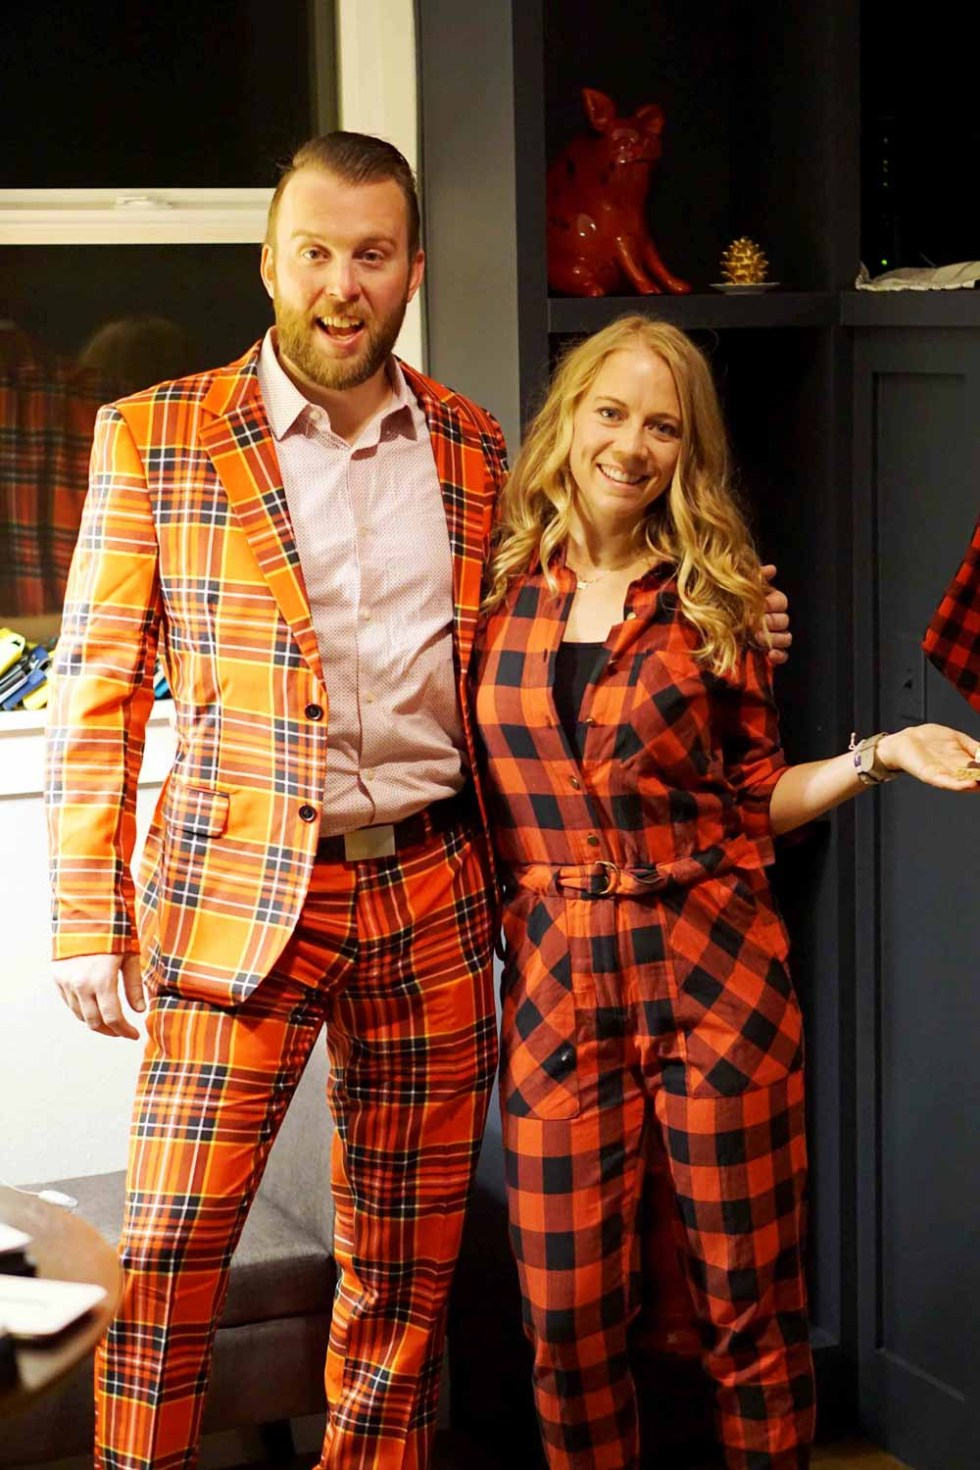 WHy brave the cold in skimpy cocktail gear when you can wear plaid inside. Indoor S'Mores, Chili Bar, Meatballs, Hummus Cukes, Champagne punch and more! Find a healthy and comforting menu for your lumberjack New Years Eve Party